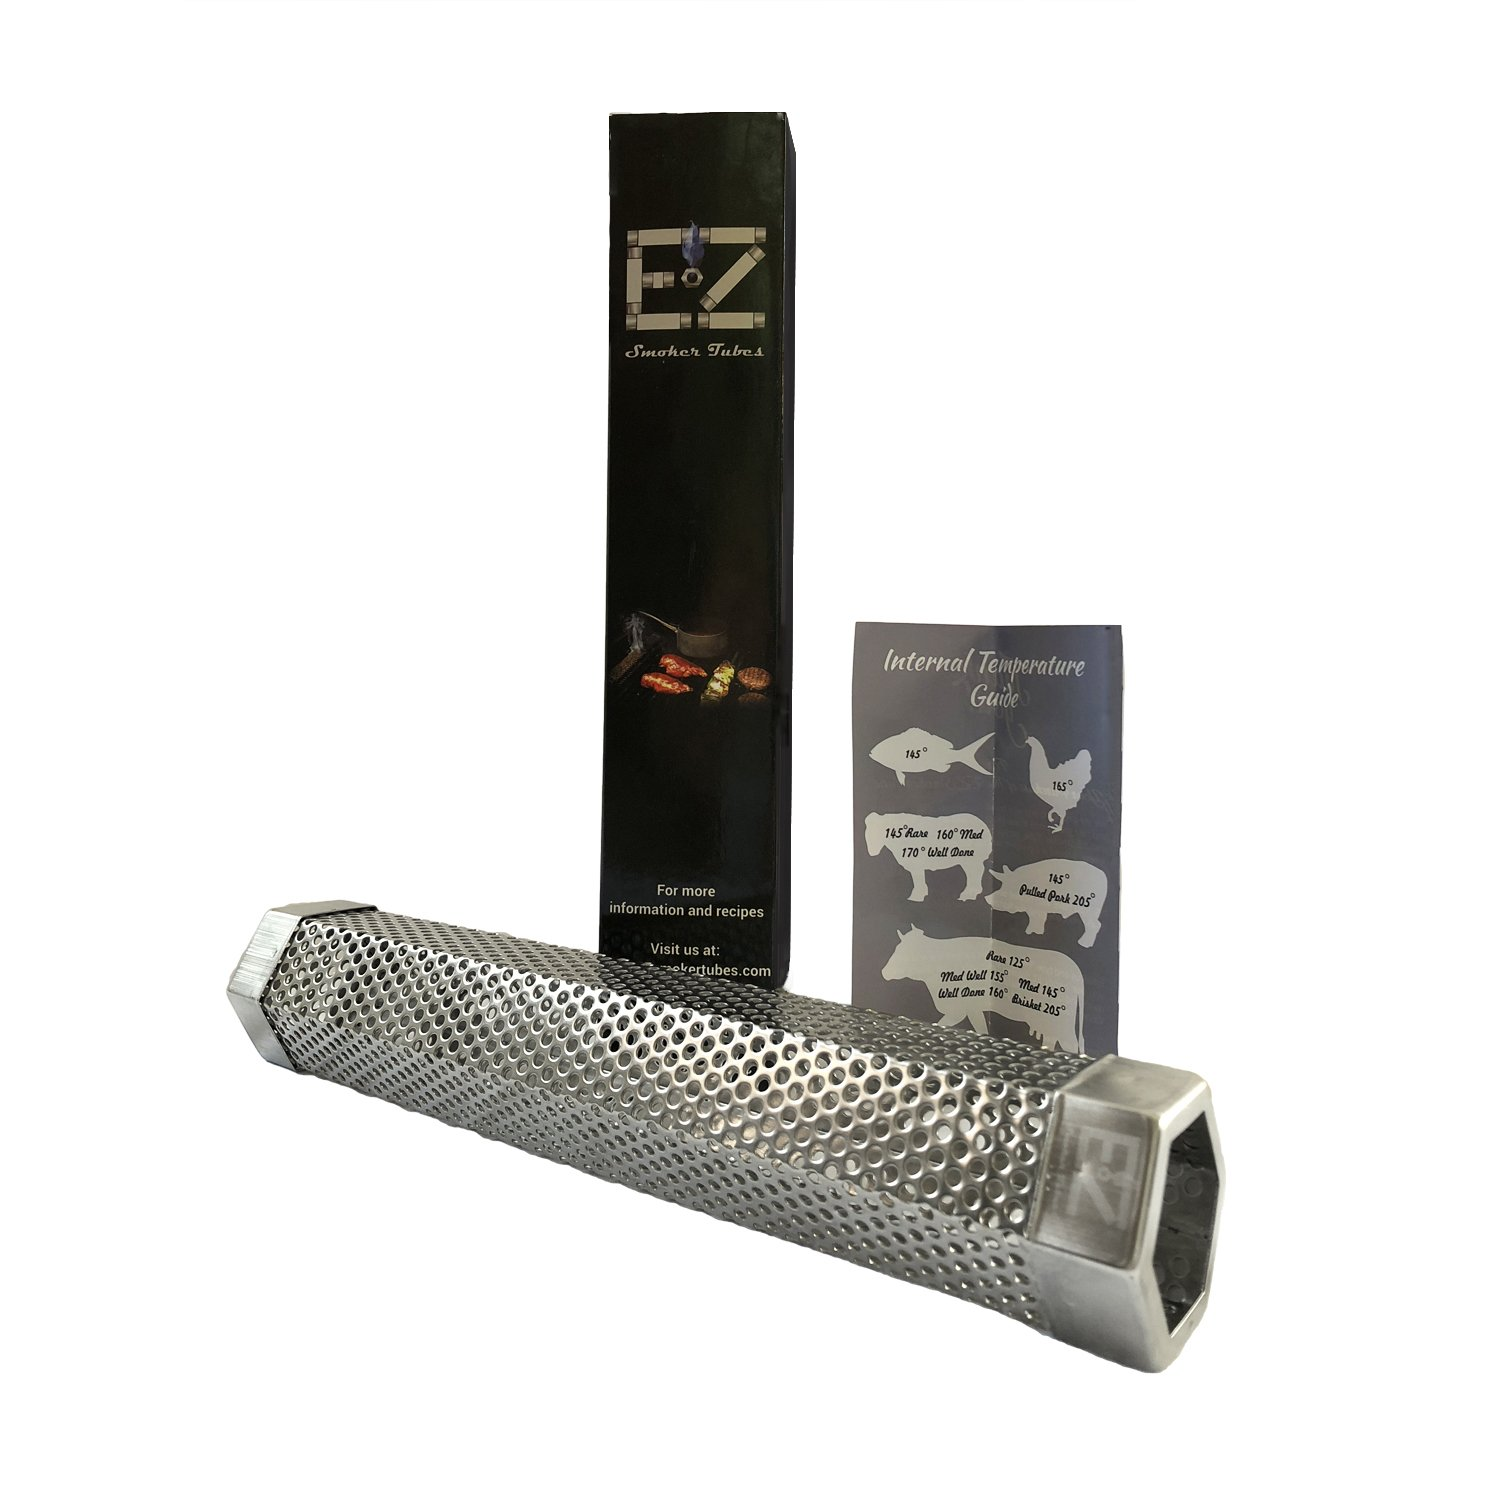 12'' EZ Smoker Tubes Hexagonal Pellet Smoker Tube- Must have grilling accessory. Included with purchase are our popular E-books: 101 EZ Jerky Recipes, Low Carb and Diabetic Friendly Grilling Recipes